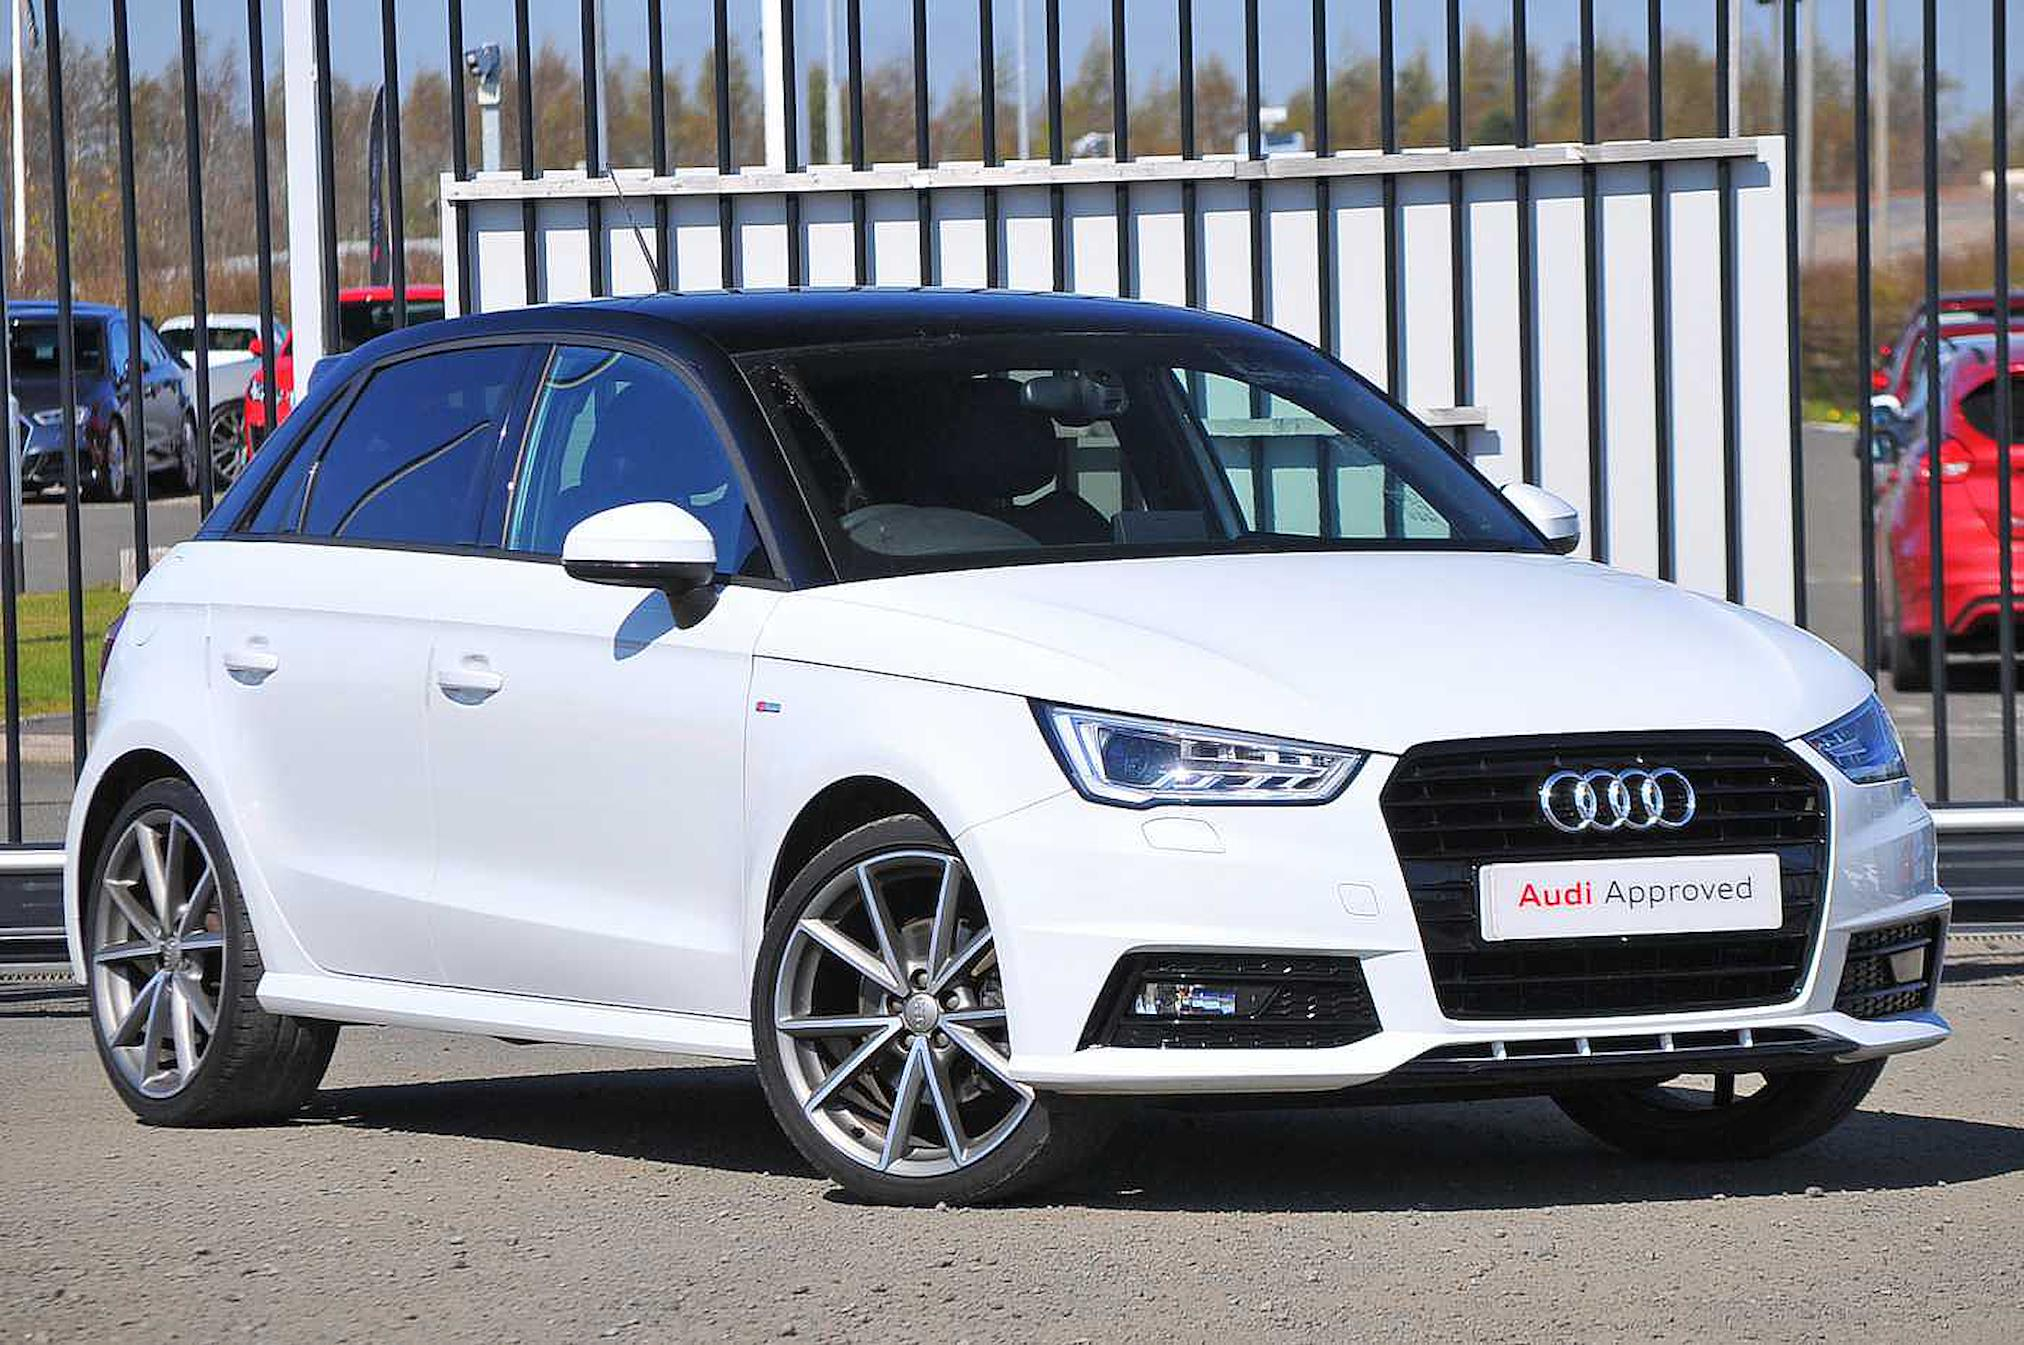 Used A1 Audi Black Edition 1 4 Tfsi Cylinder On Demand 150 Ps 6 Speed 2017 Lookers